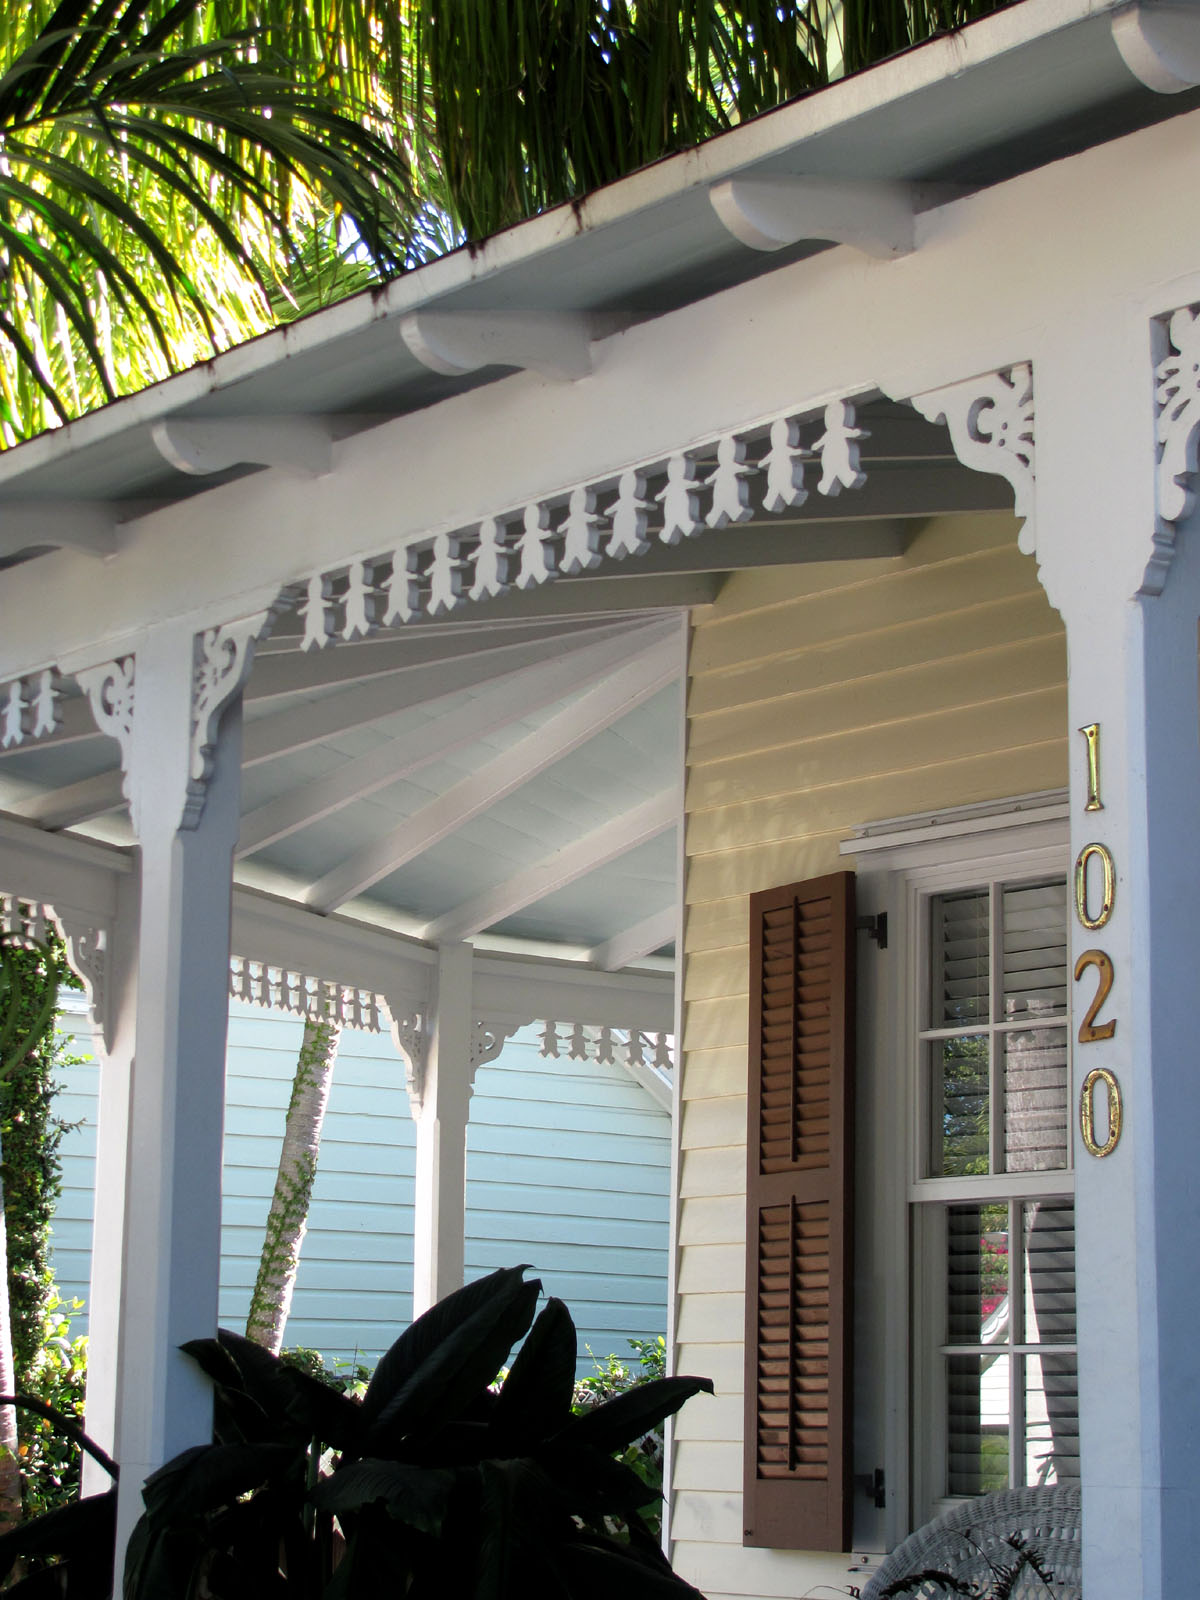 Key west vacation gypsy gingerbread scroll stroll in old for Classic house keys samplephonics